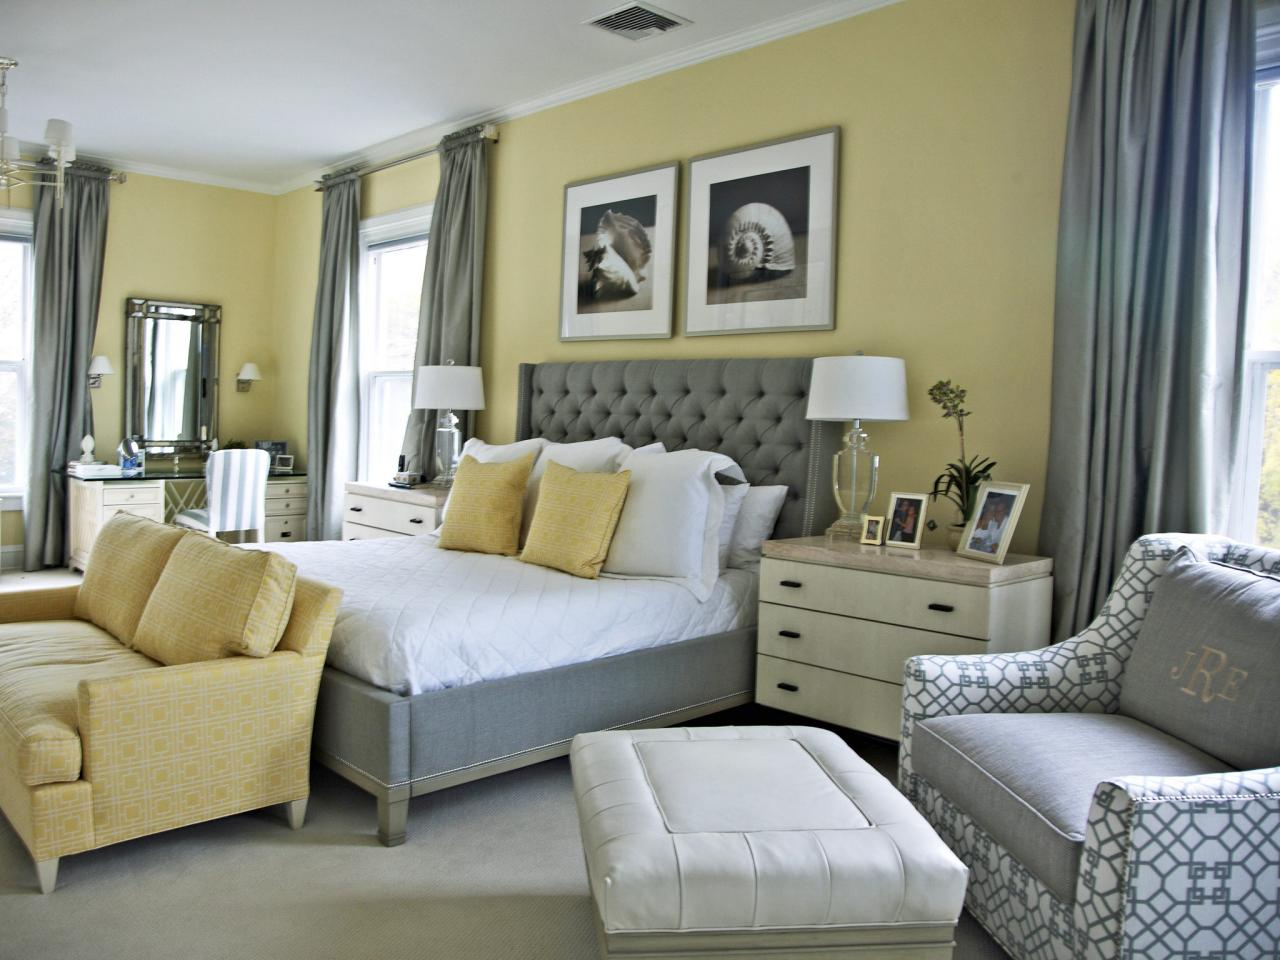 Traditional bedroom designs for couples - What Color To Paint Your Bedroom